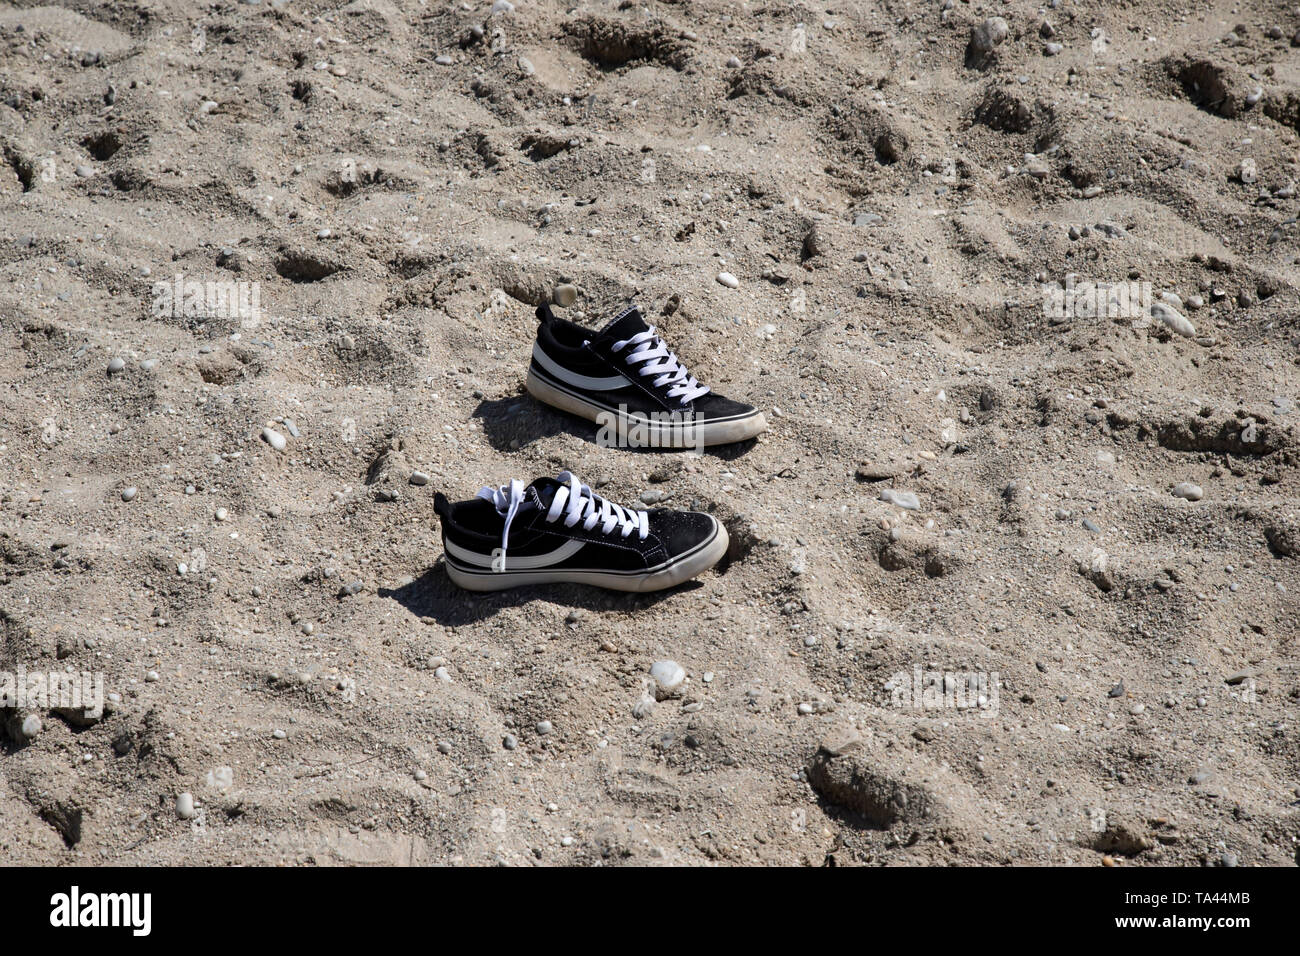 Young child's trainer shoes abandoned on a sandy beach in Swanpool, West Cornwall U.K. - Stock Image